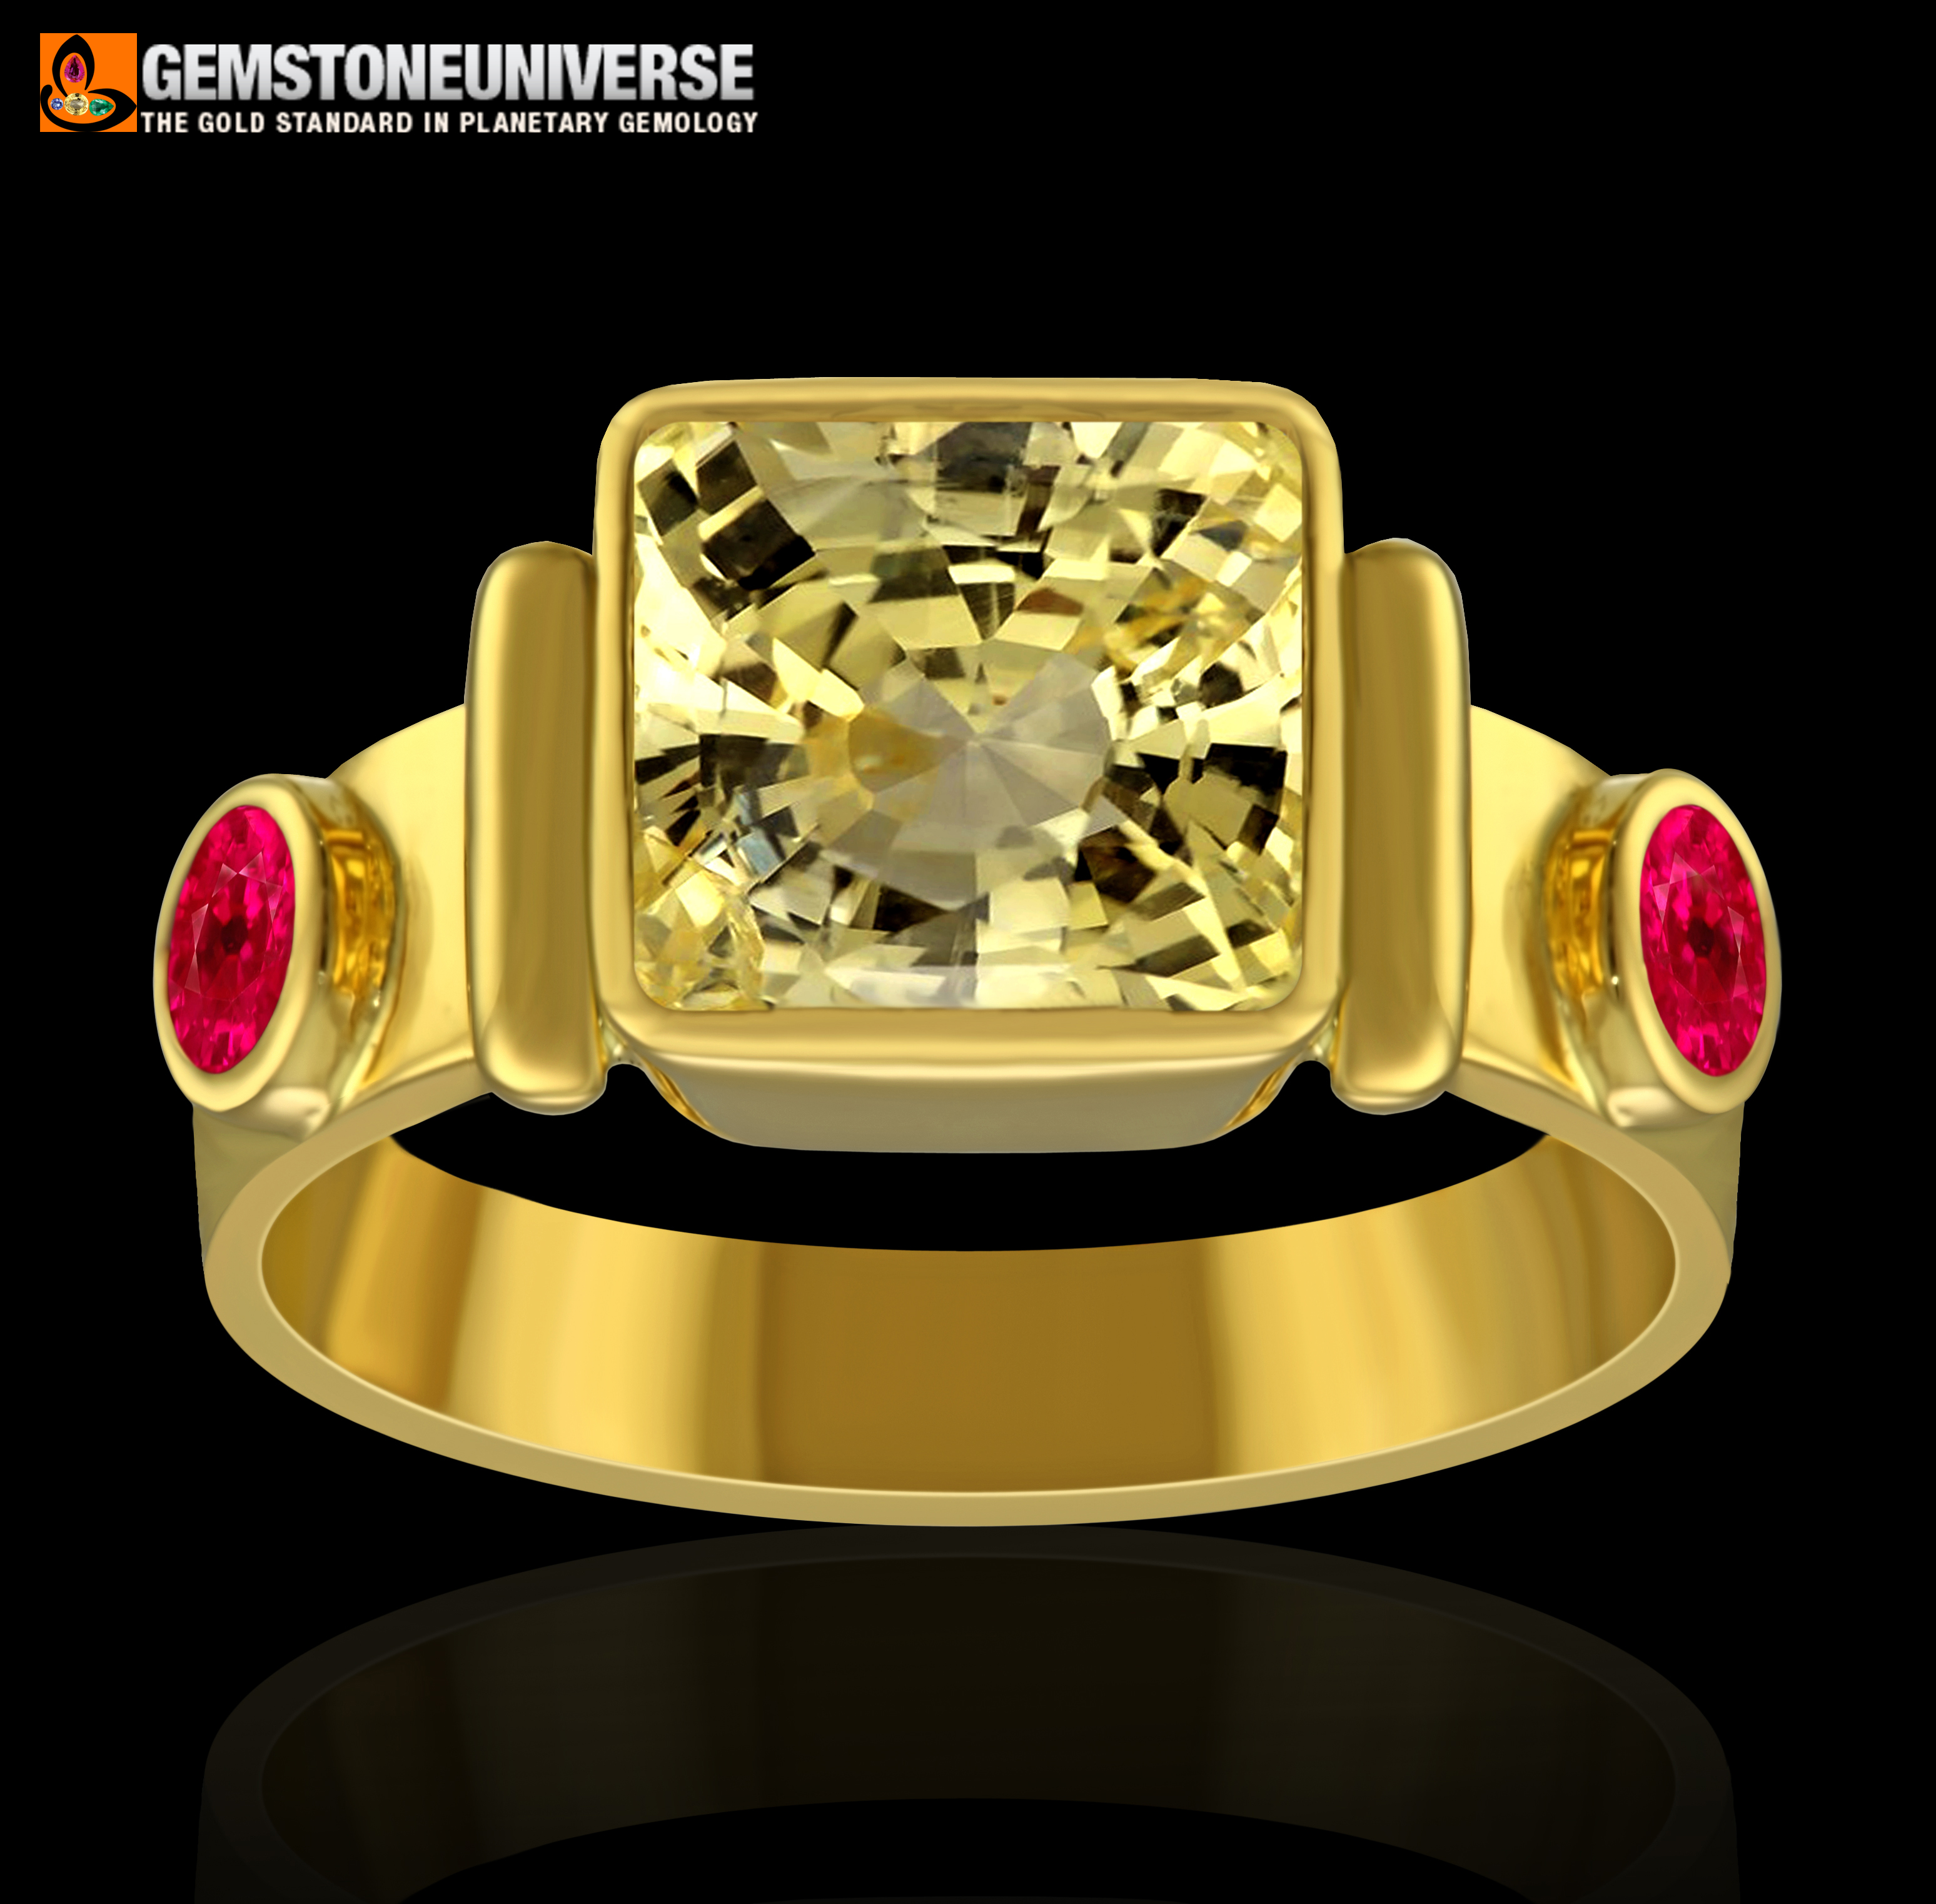 Yellow Sapphire Stone- The Pukhraj Stone for Jupiter